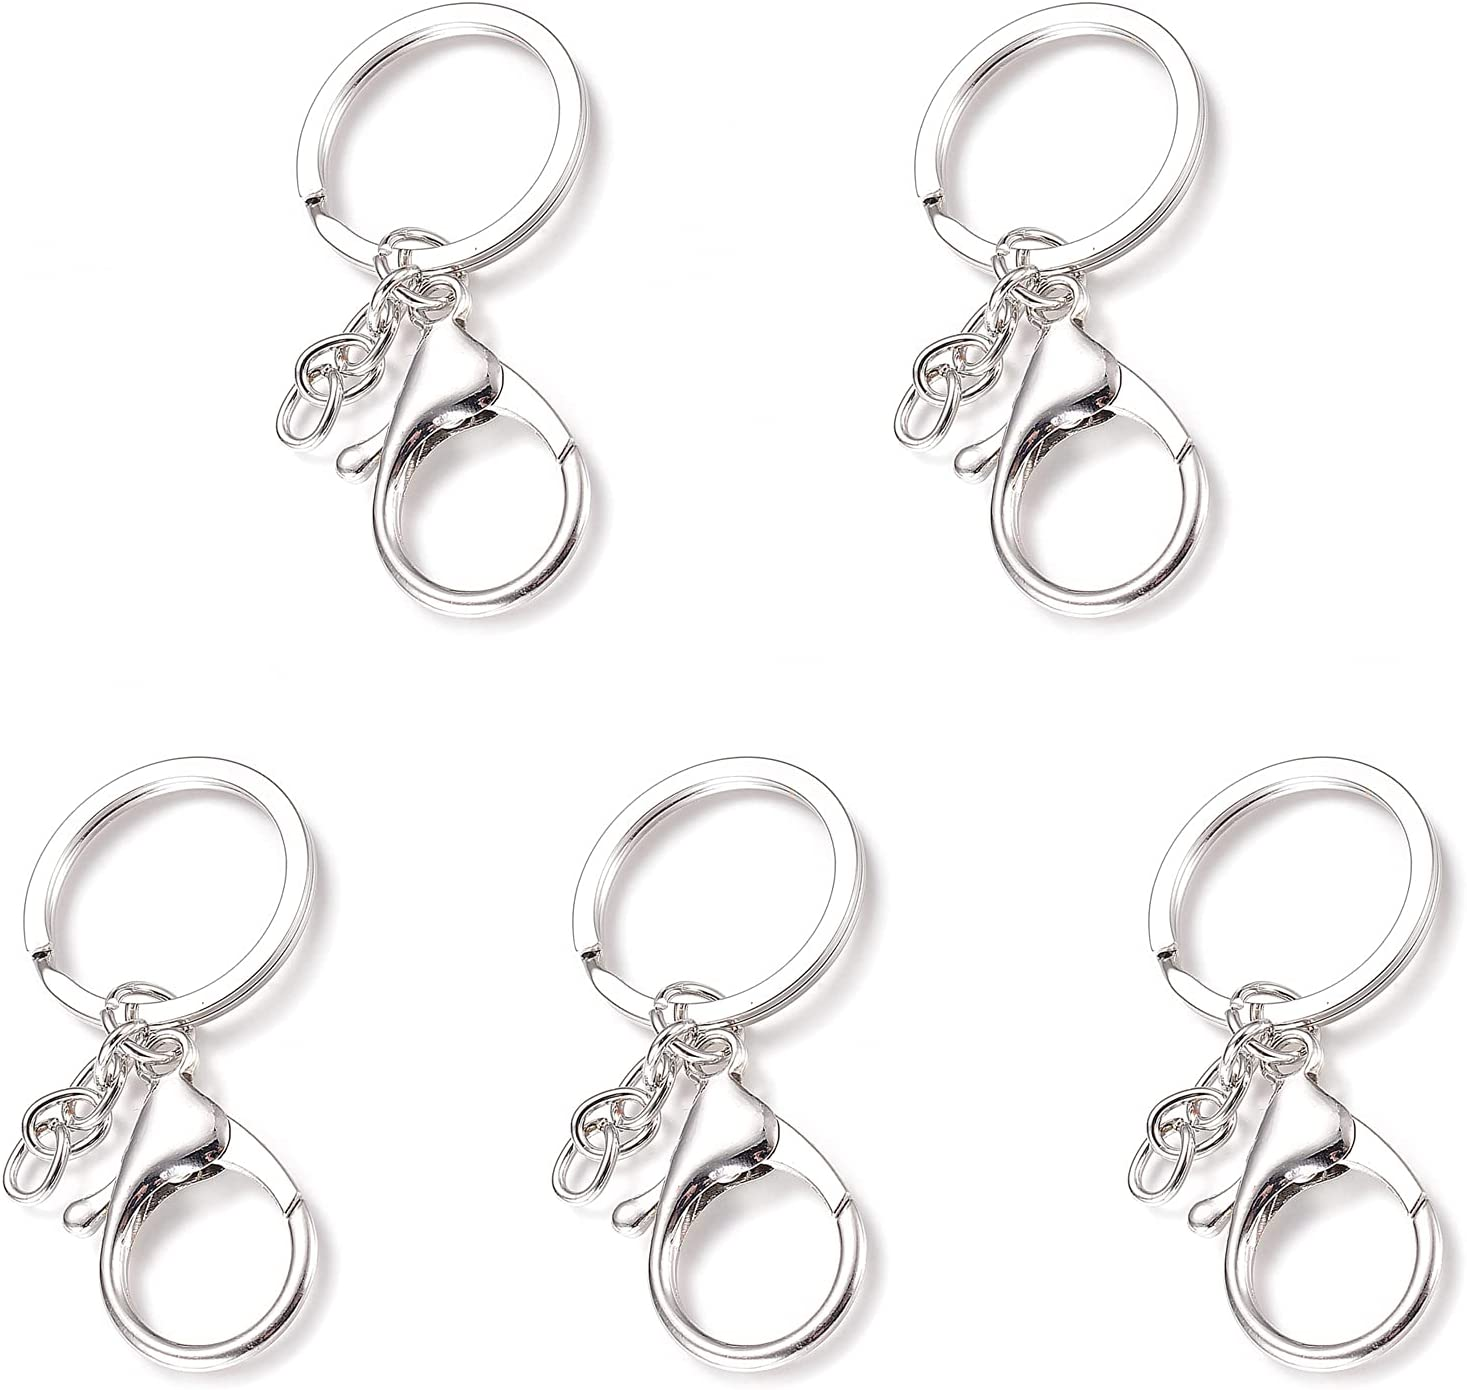 Ornaland Large-scale Fashion sale 5 Pcs Metal Lobster Claw Lanya Key Keychains with Clasp